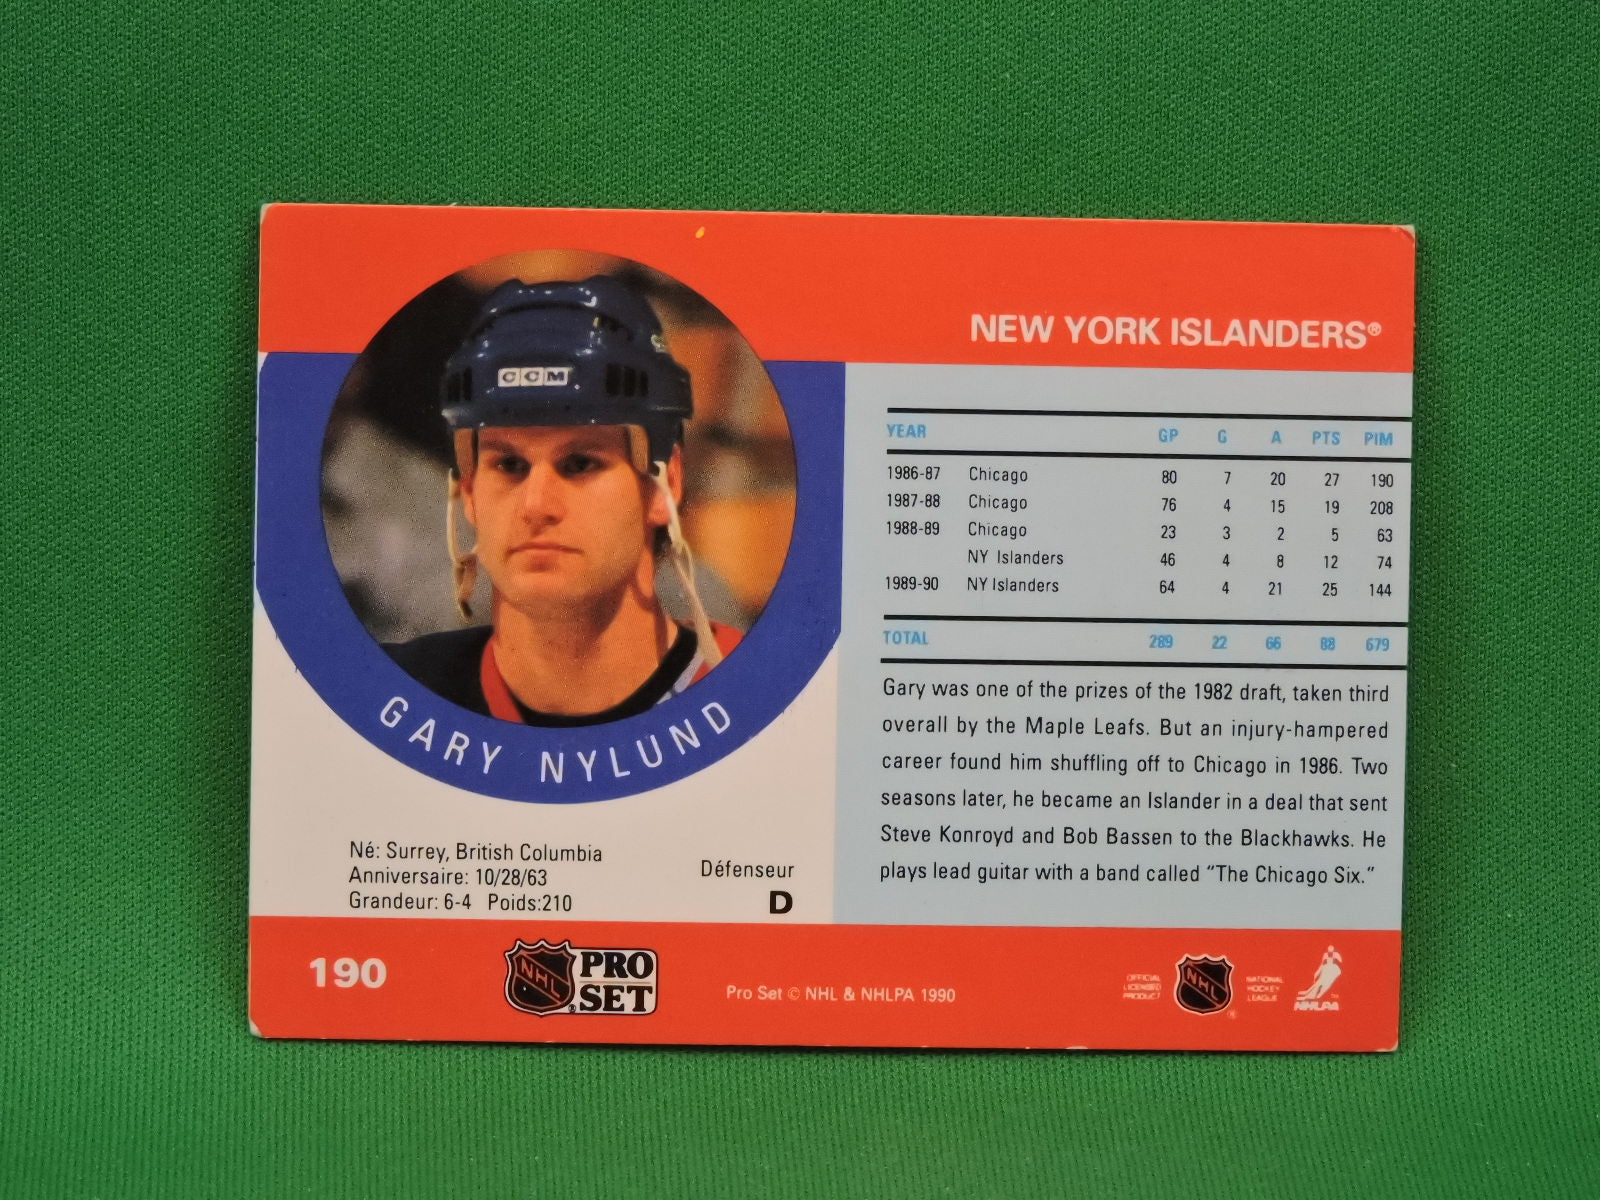 collector cards  1990  pro set  190  gary nylund